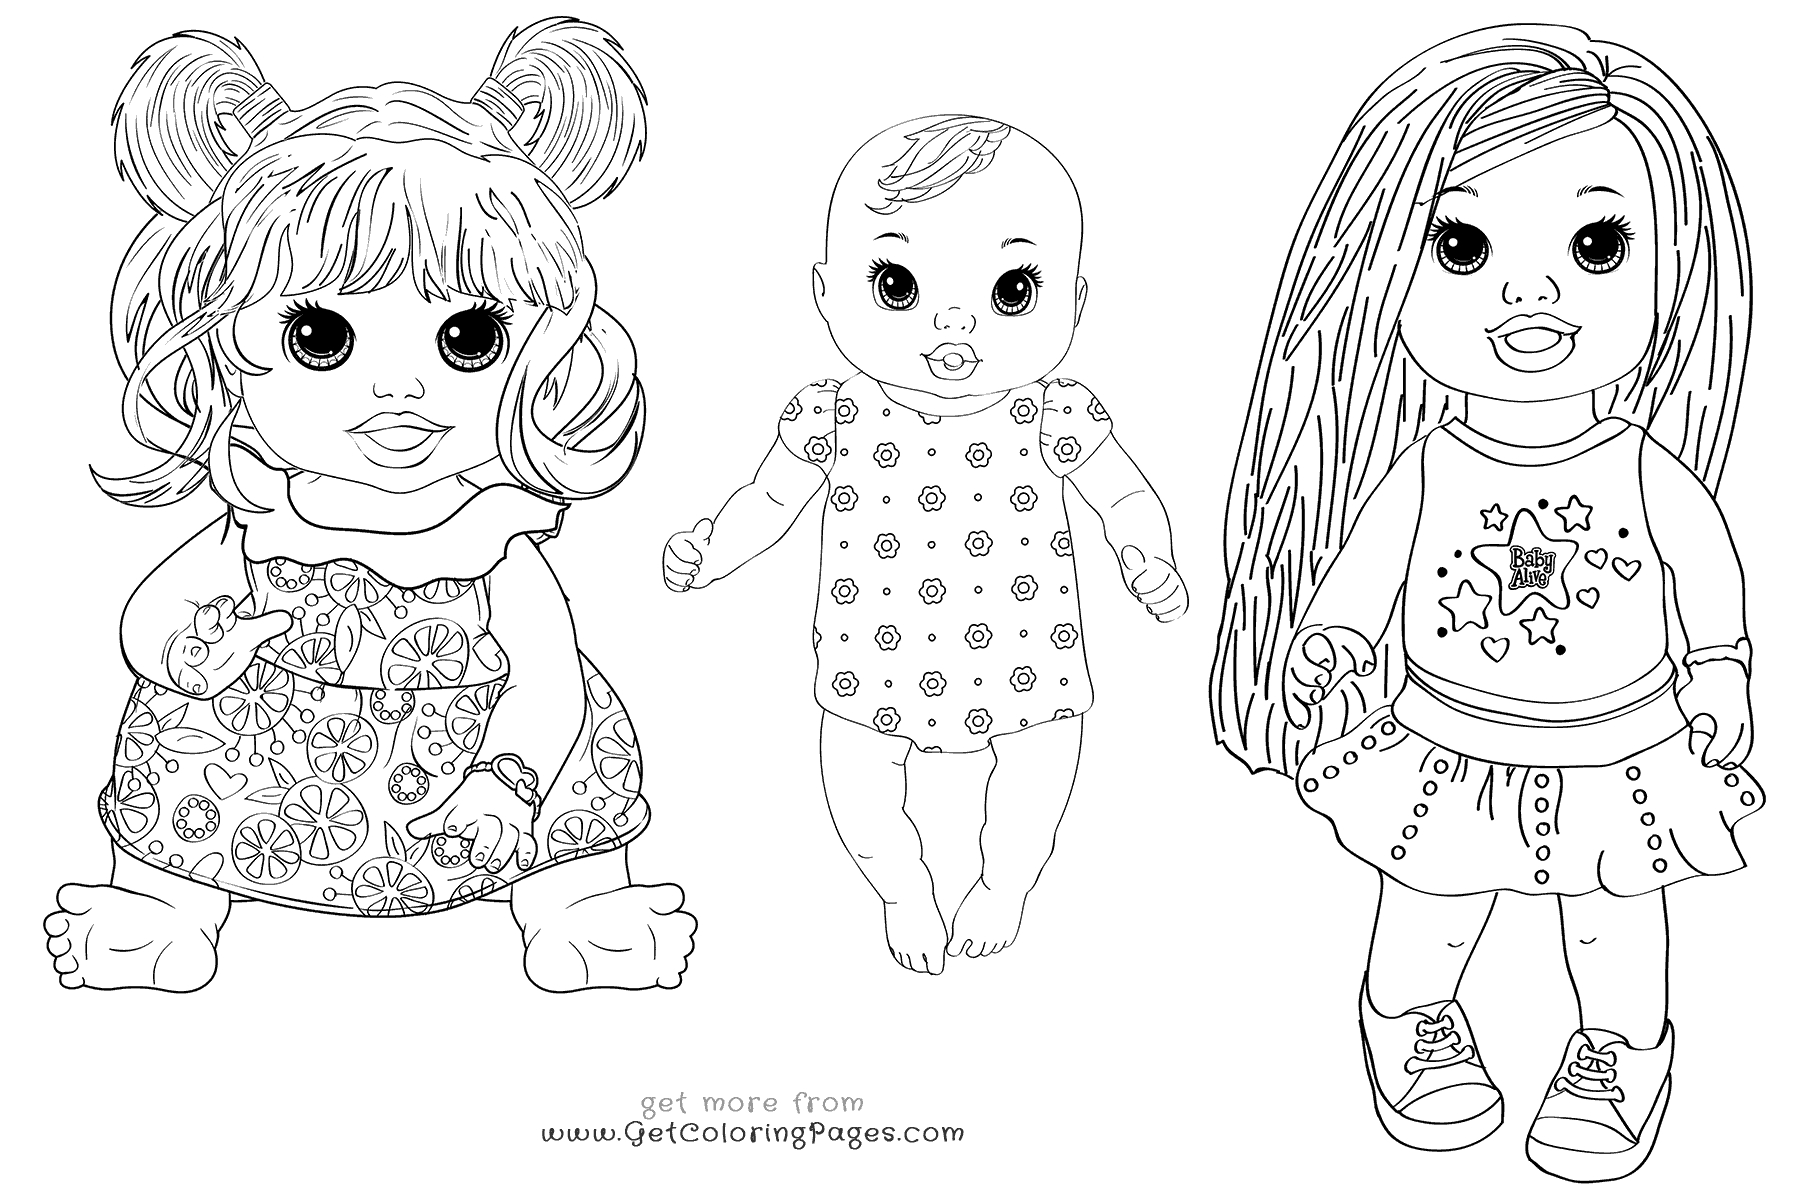 baby alive coloring pages - baby alive food packets coloring pages printable sketch templates